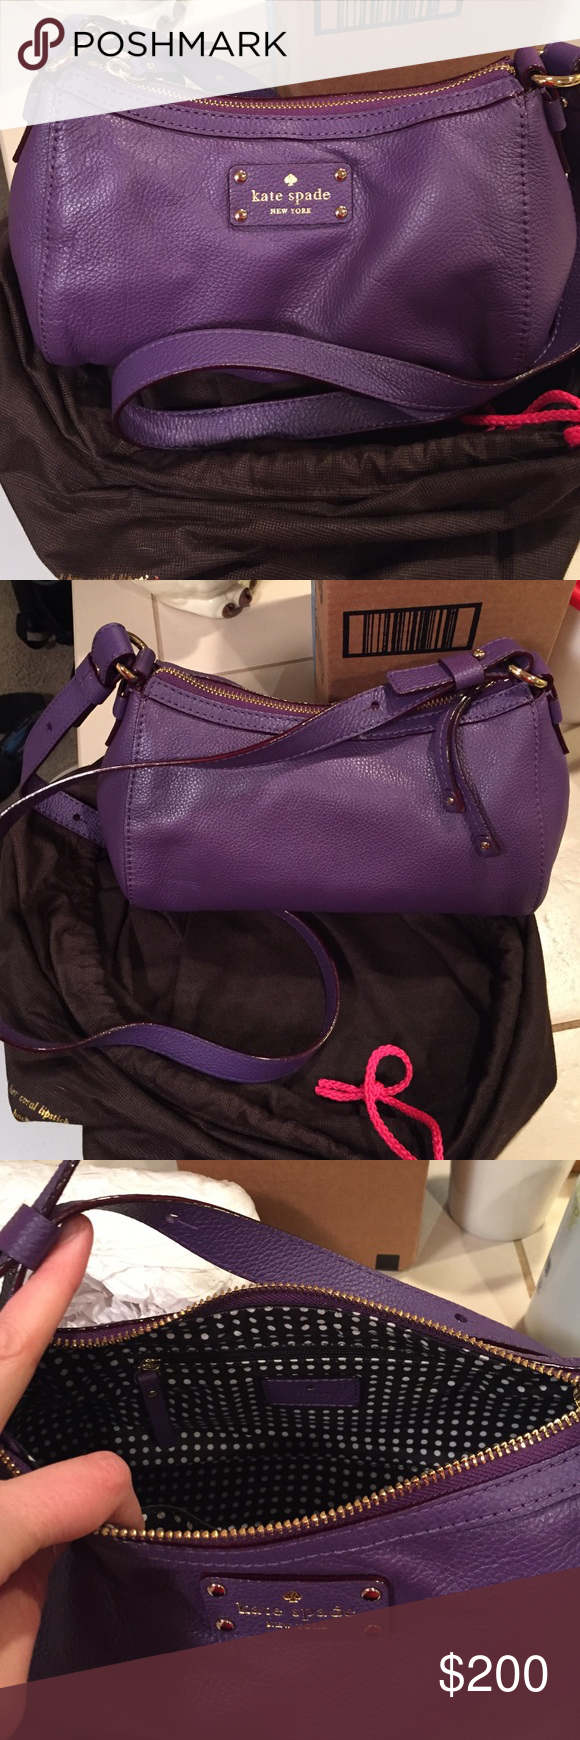 Kate Spade Purse. Never been used. Received as a gift but have no use for. Never been used still in original cloth bag kate spade Bags Crossbody Bags